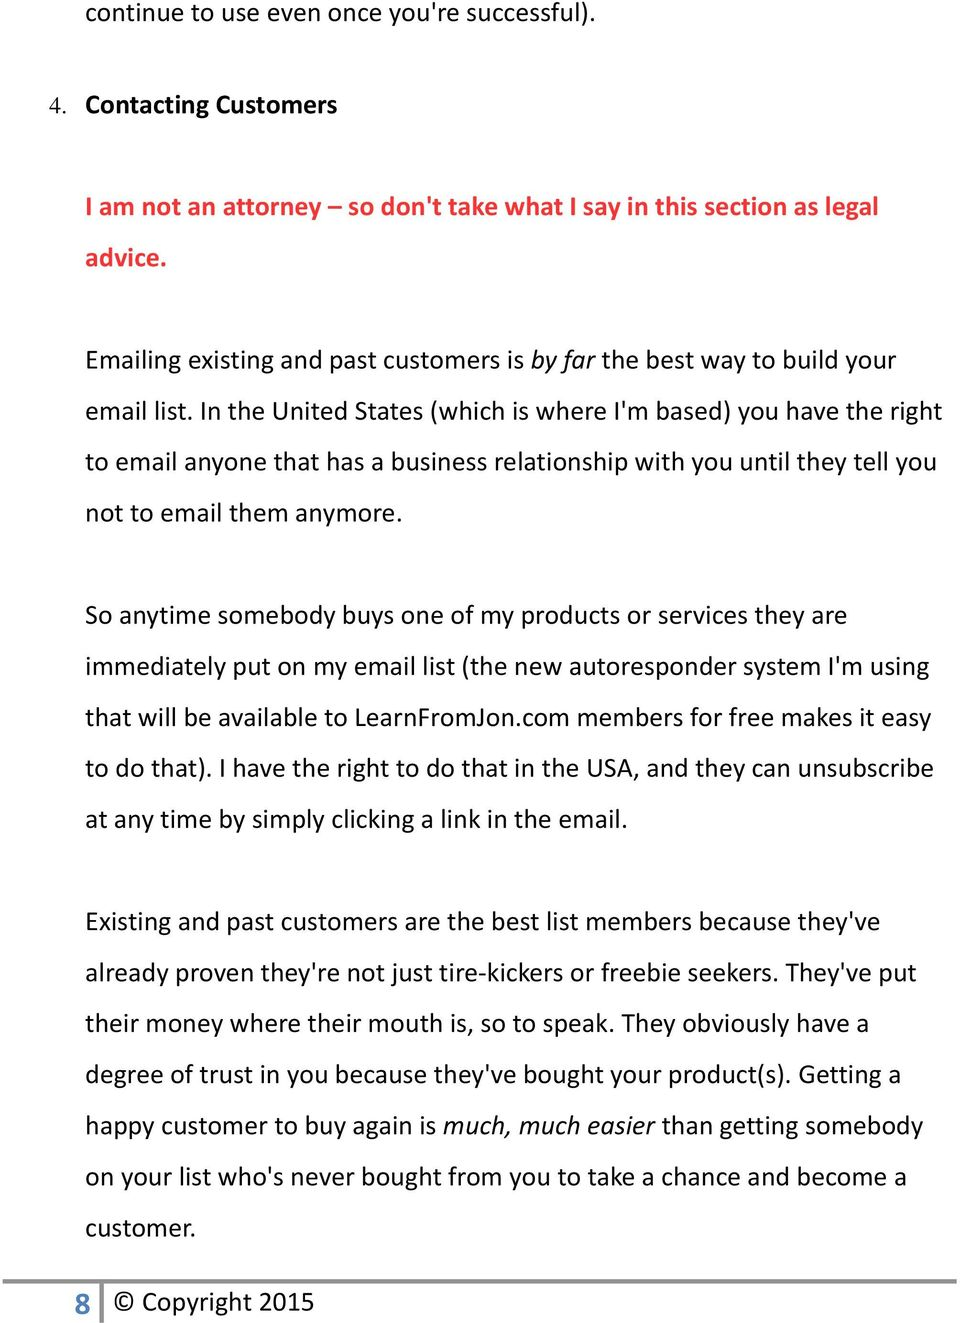 In the United States (which is where I'm based) you have the right to email anyone that has a business relationship with you until they tell you not to email them anymore.